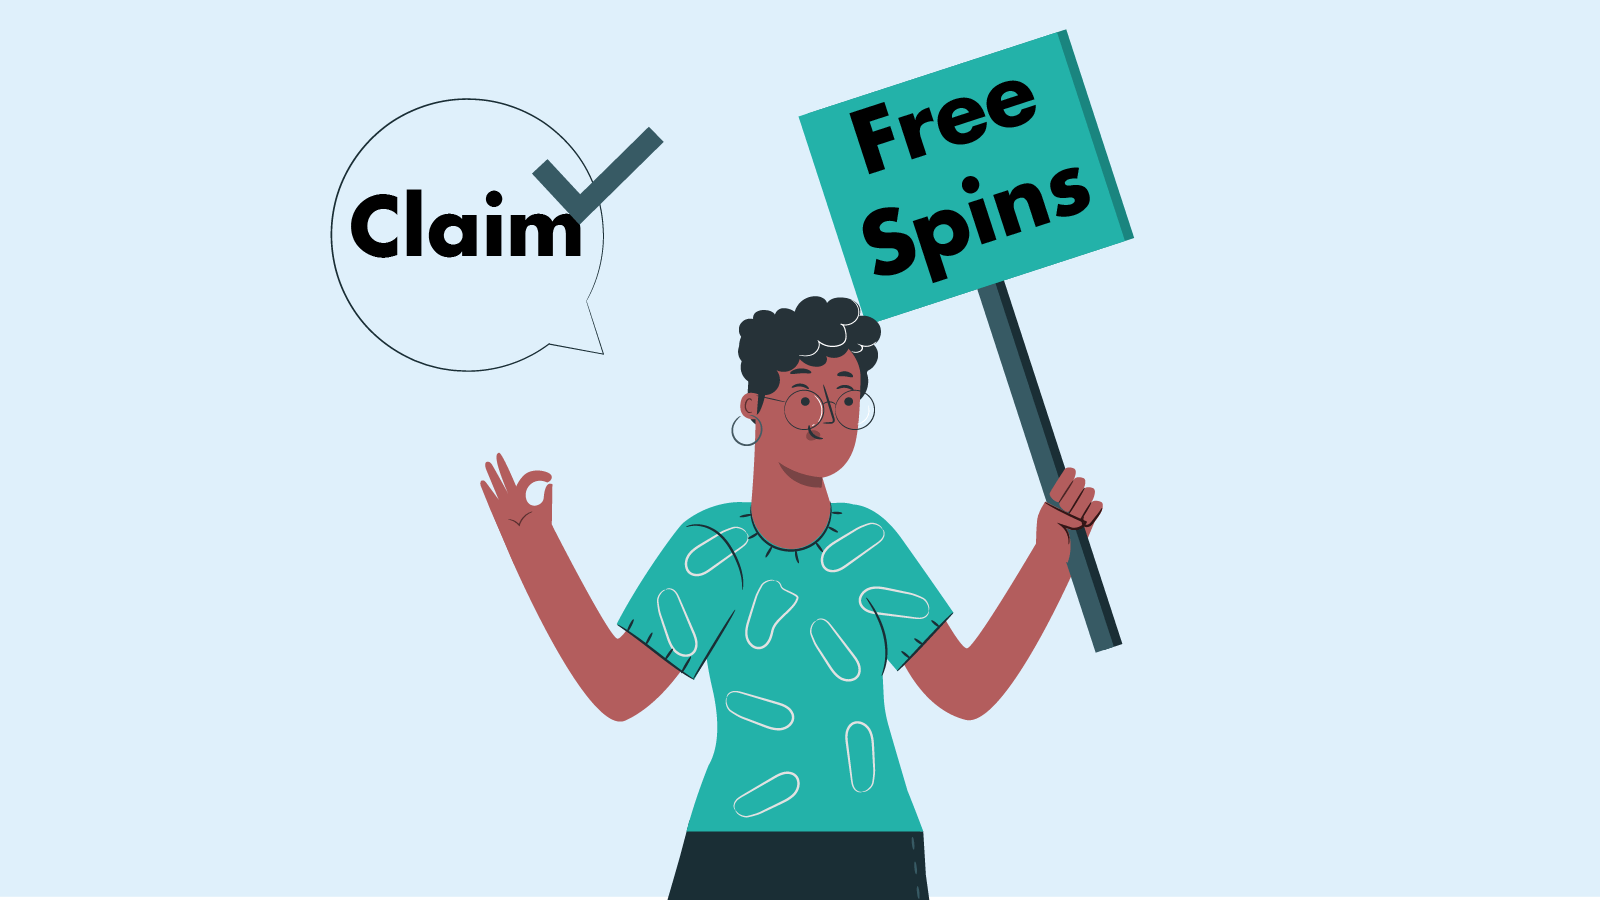 Starburst free spins – how to claim and use them